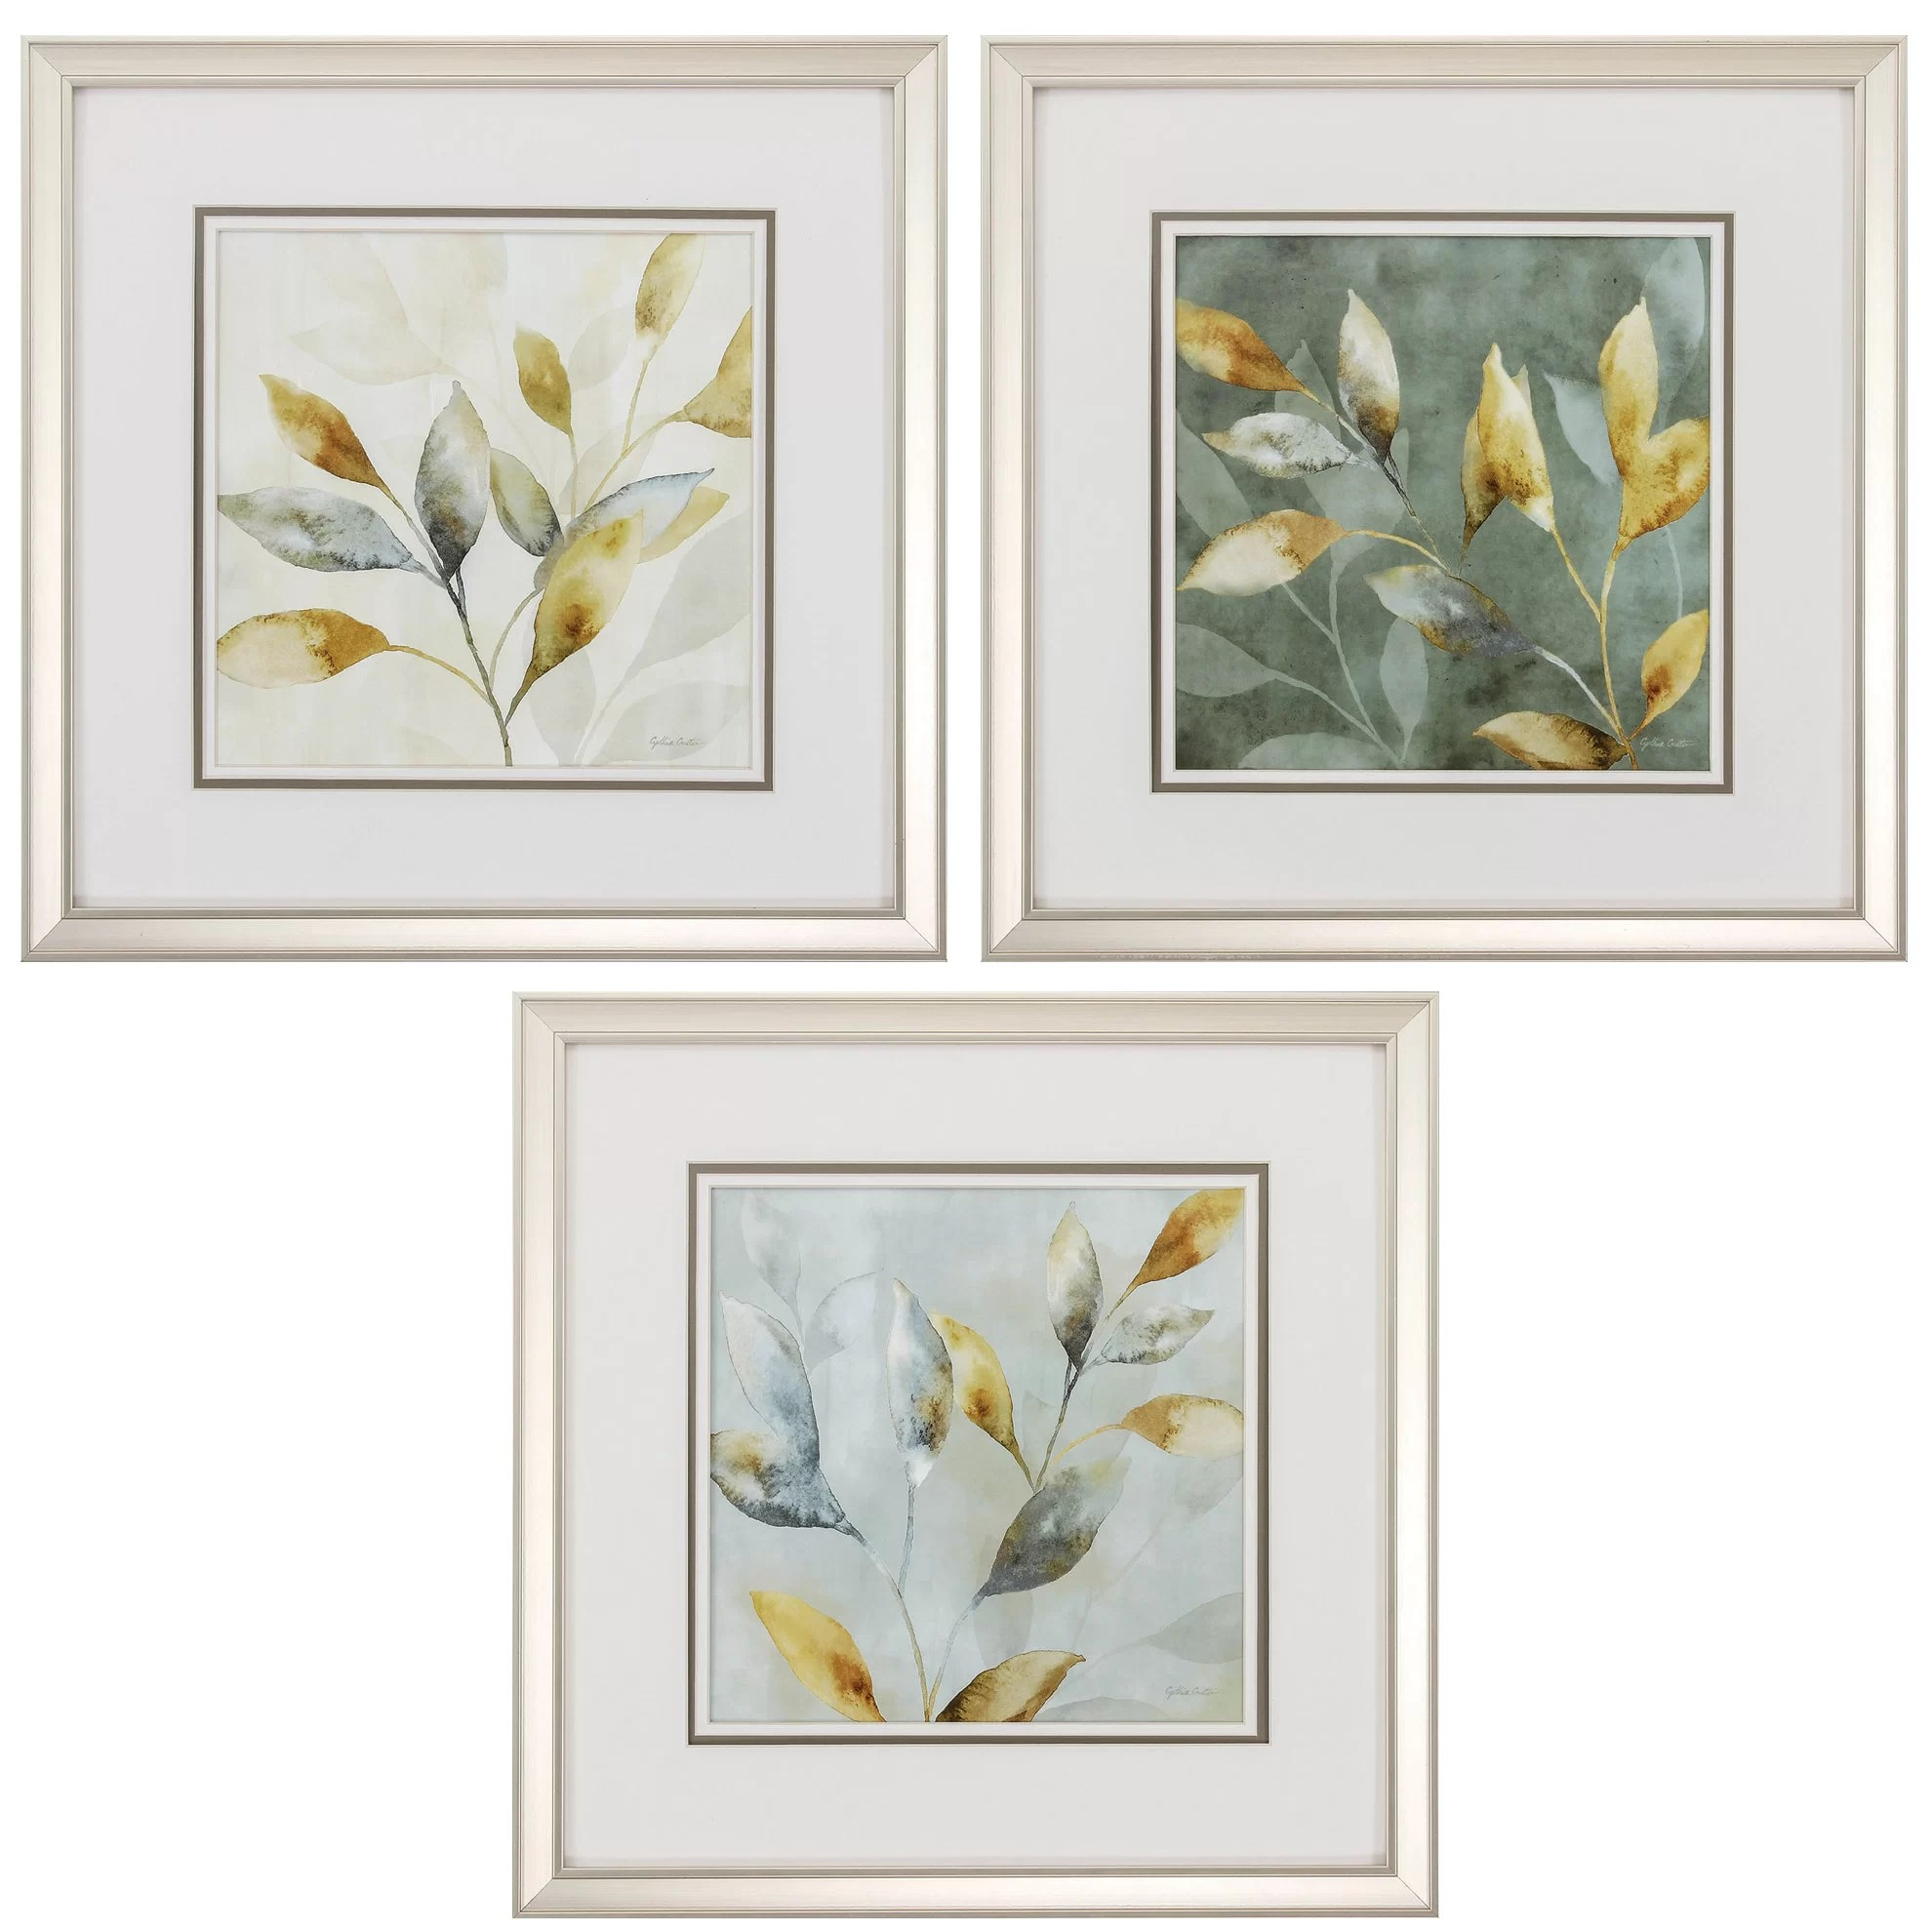 Framed Wall Art Sets Of 3 Propac Images Majestic Leaves 3 Piece Framed Graphic Art